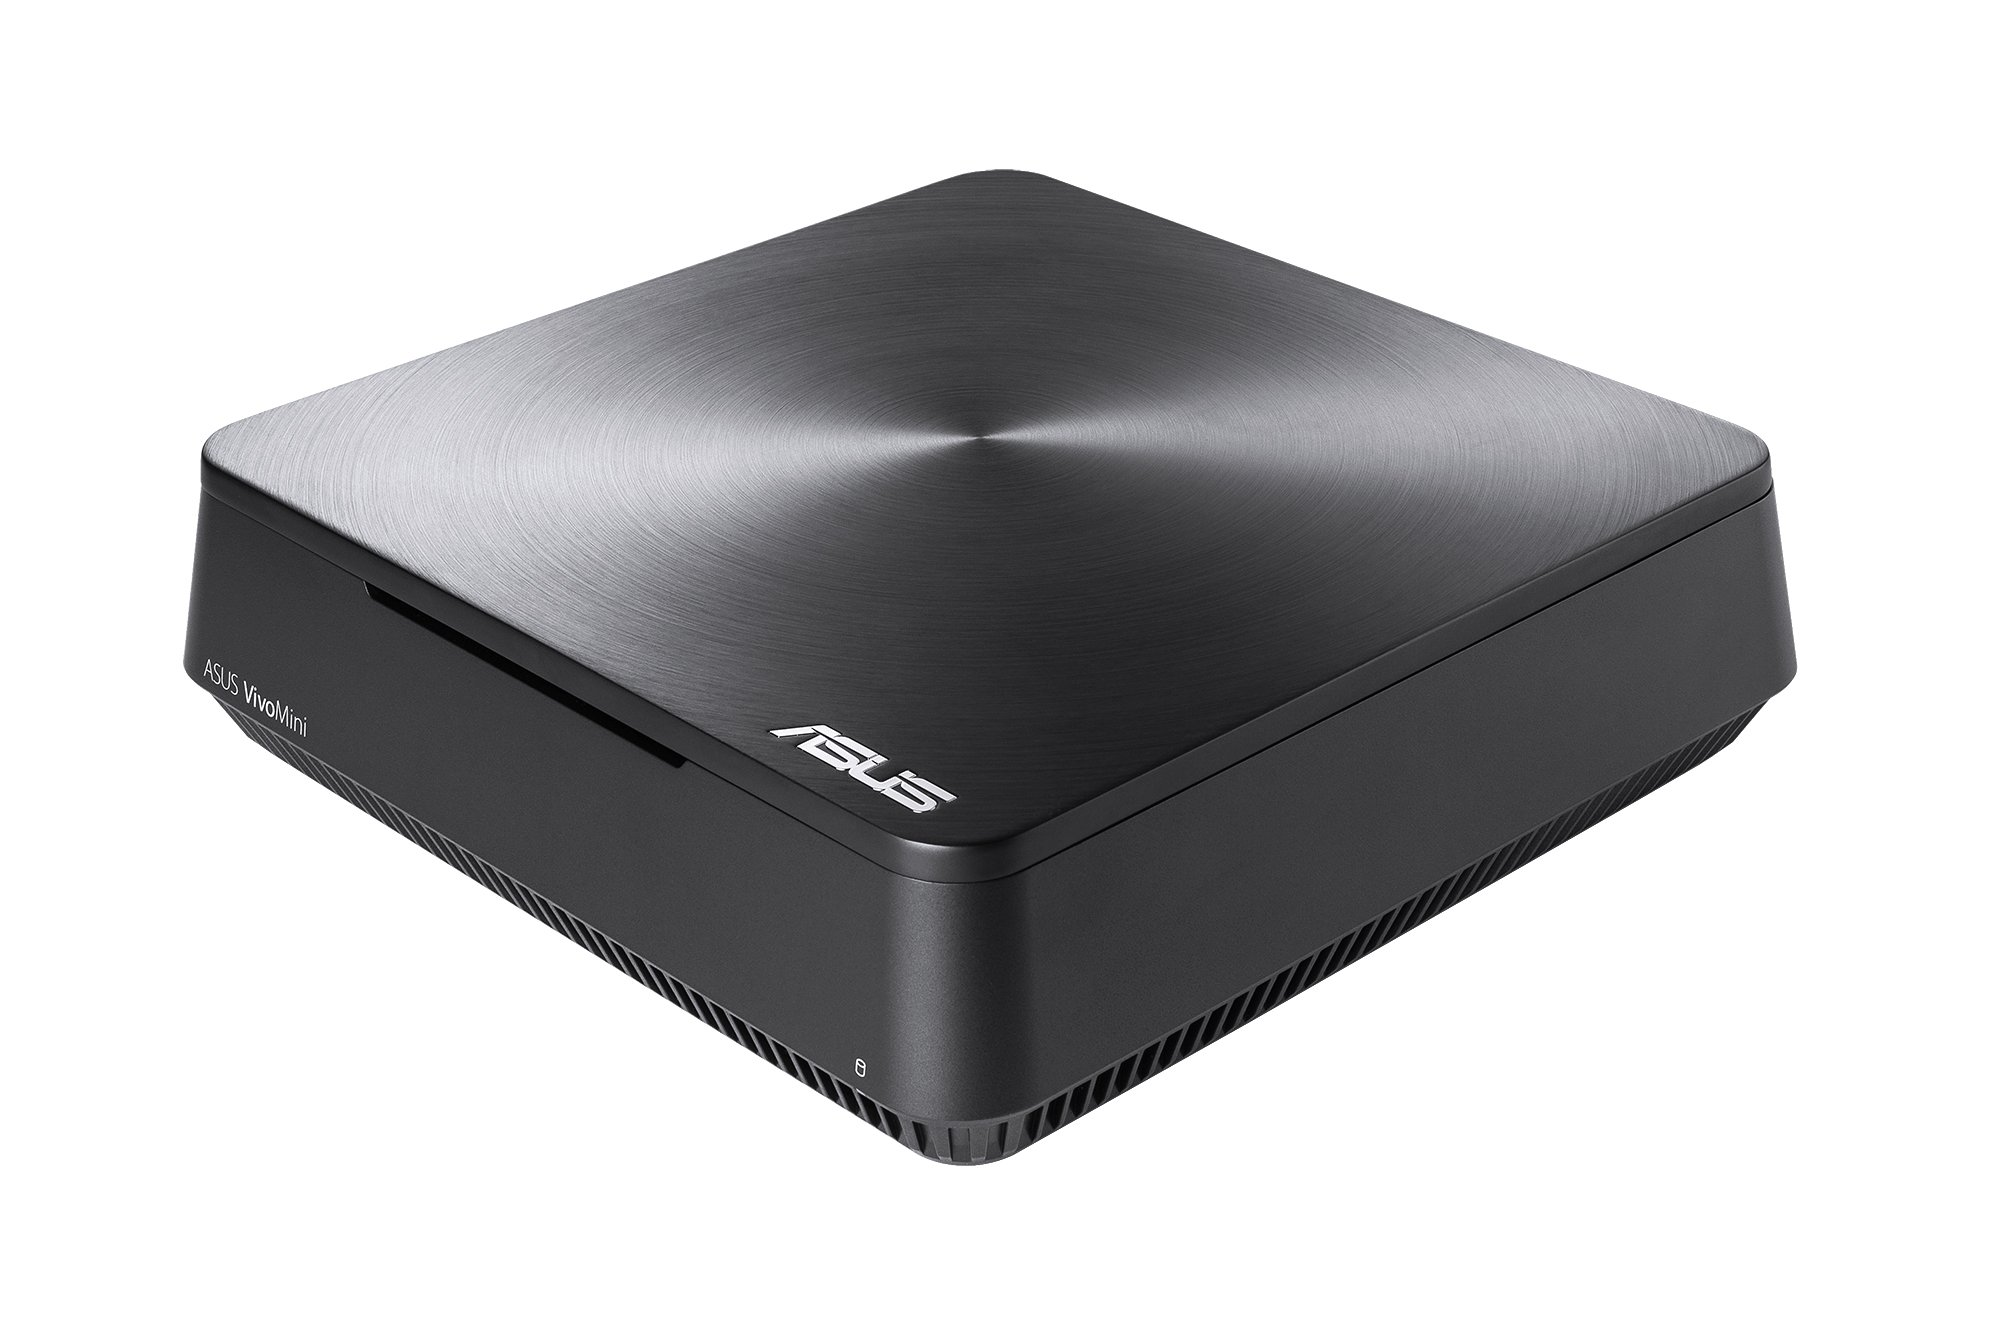 ASUS VM65N-G063Z VivoMini PC with Intel Core i5-7200U and NVIDIA GeForce GT930M Graphics